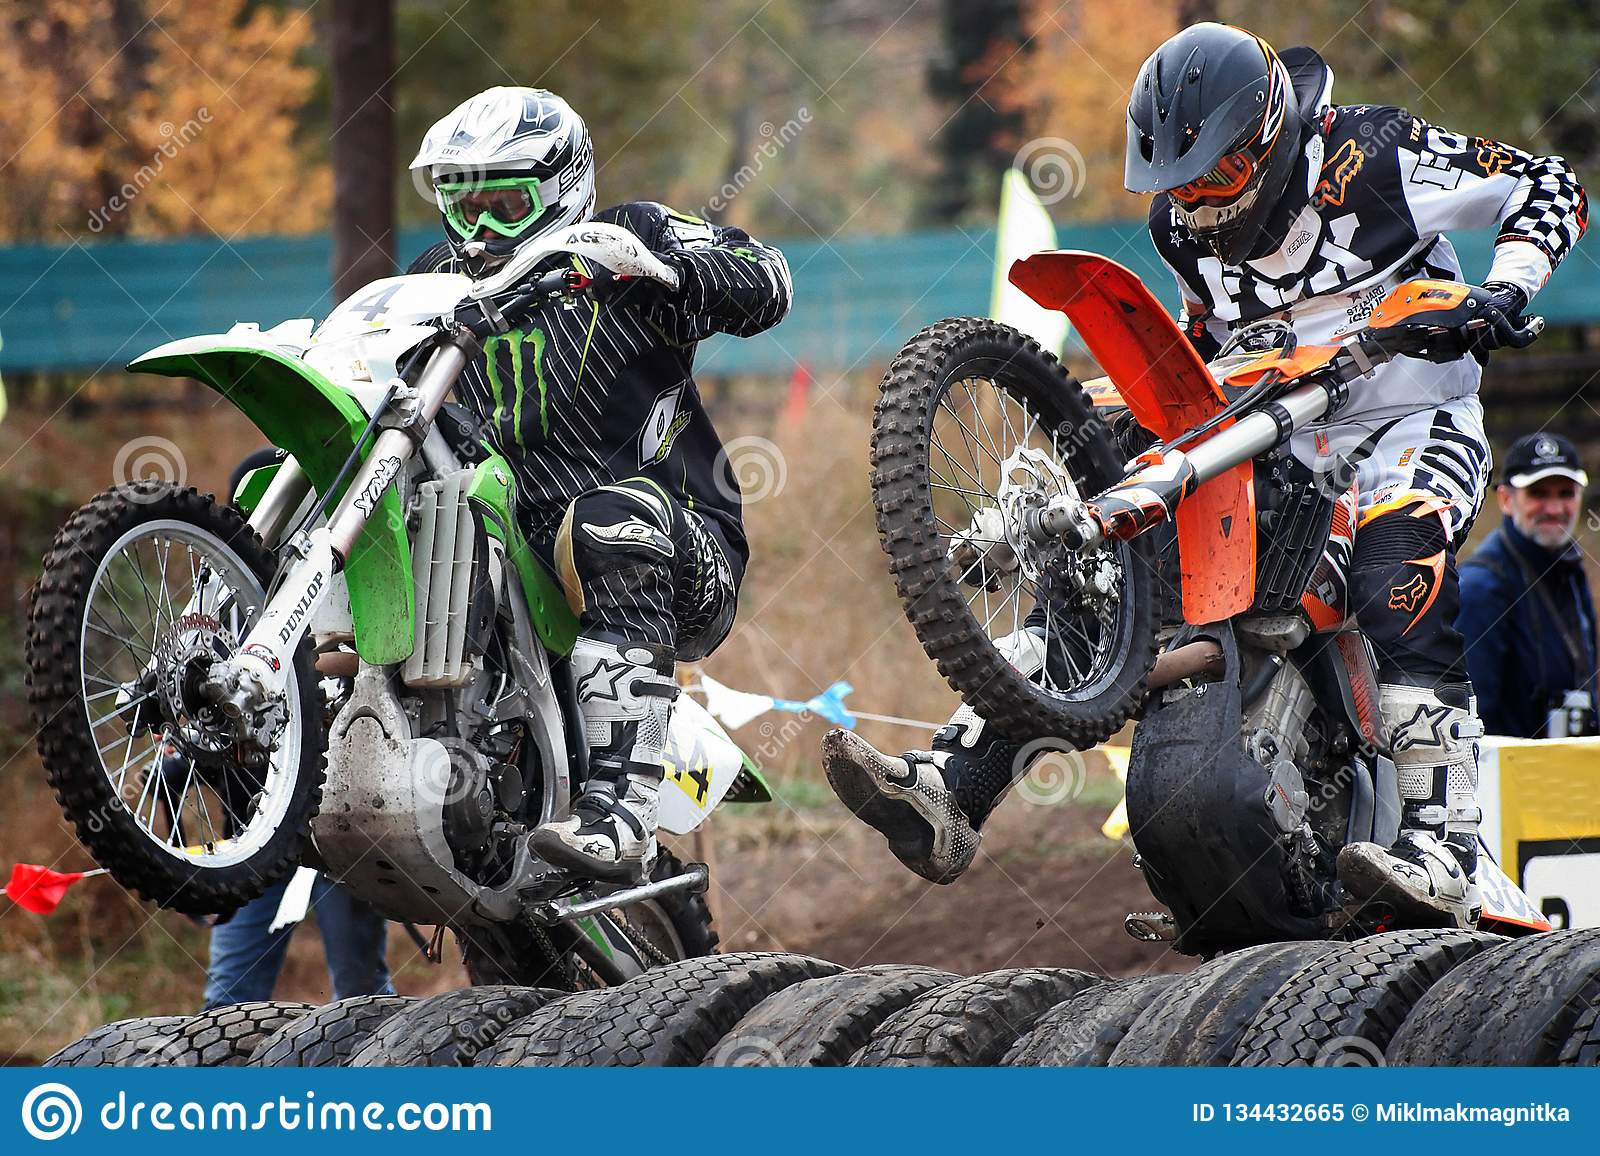 Russia, city of Magnitogorsk, - July, 10, 2011. Participants races motocross competition at an open city stadium